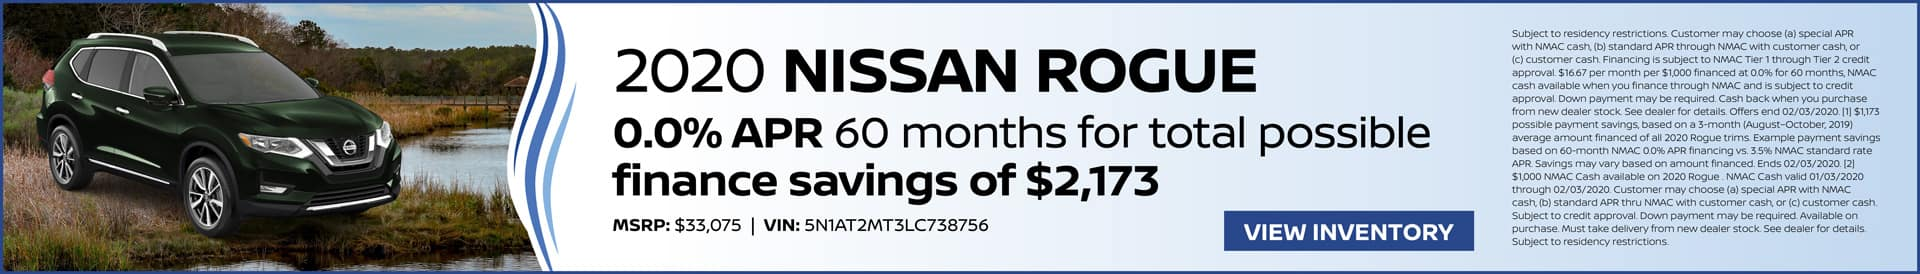 January Offer on 2020 Nissan Rogue